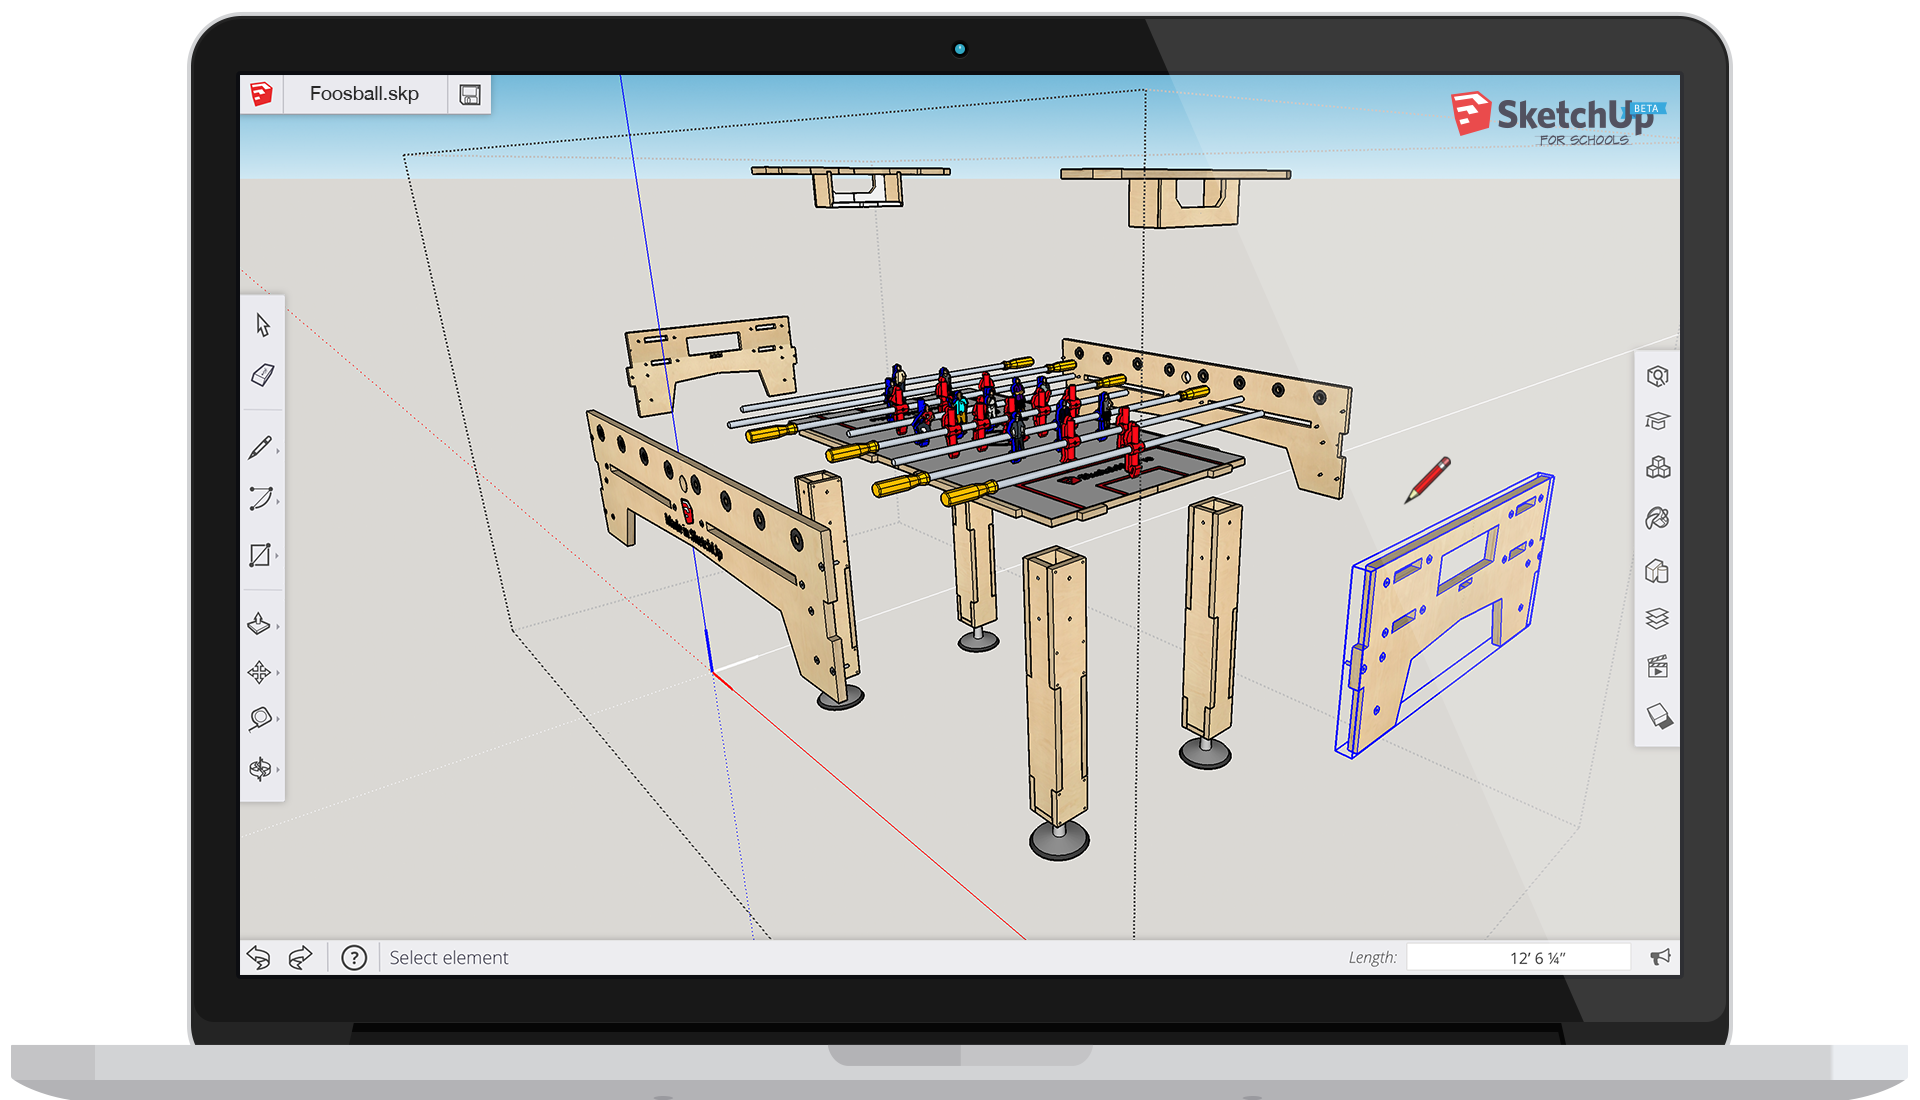 Download Sketchup For Chrome